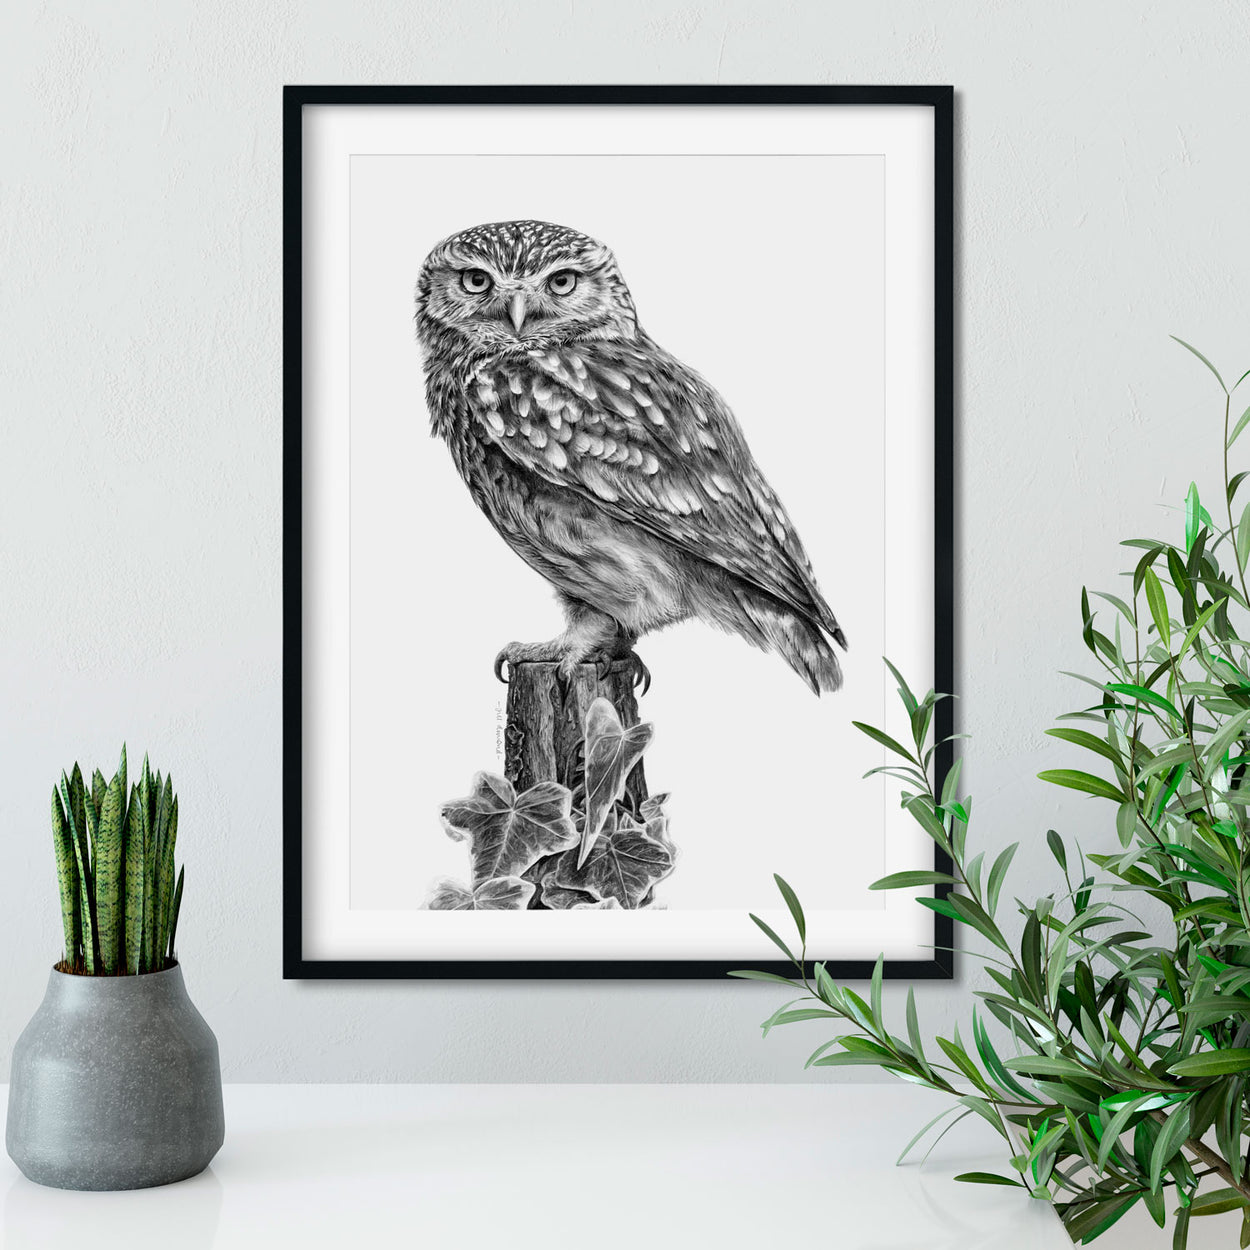 Little Owl Drawing on Wall - The Thriving Wild